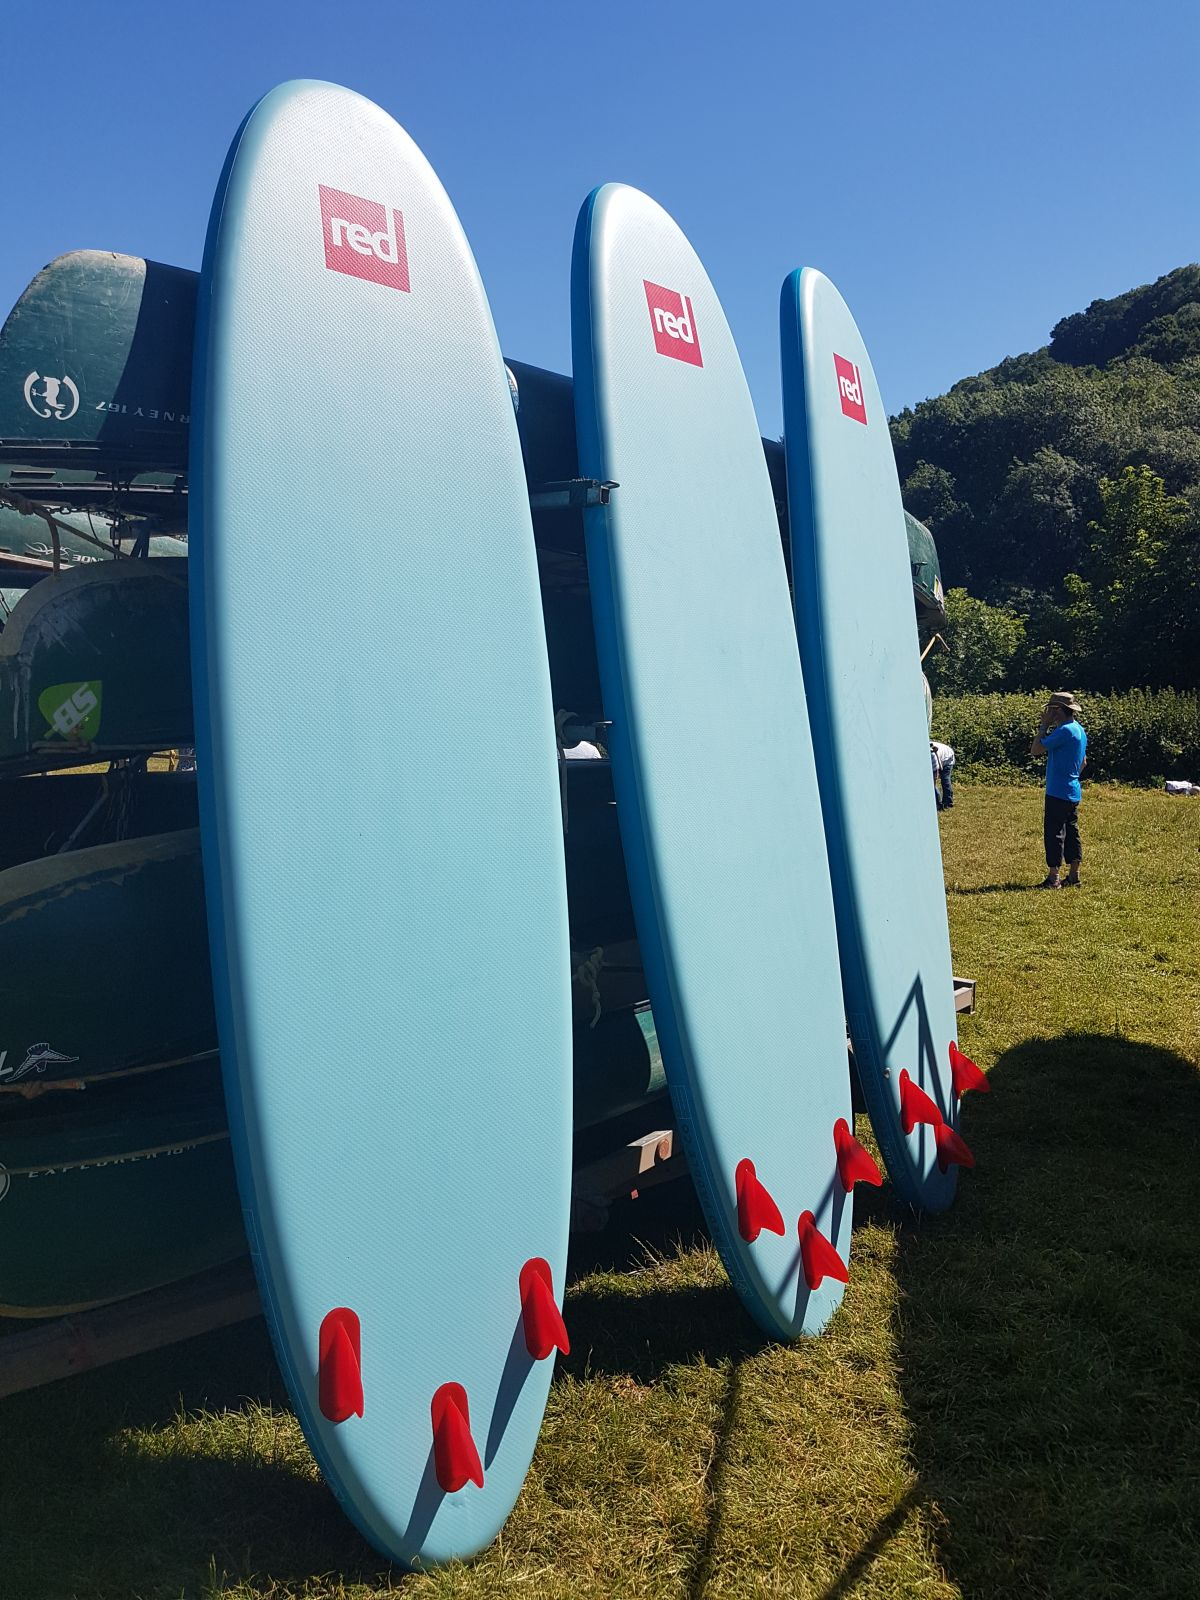 Red Paddle Boards in the sun ready to go